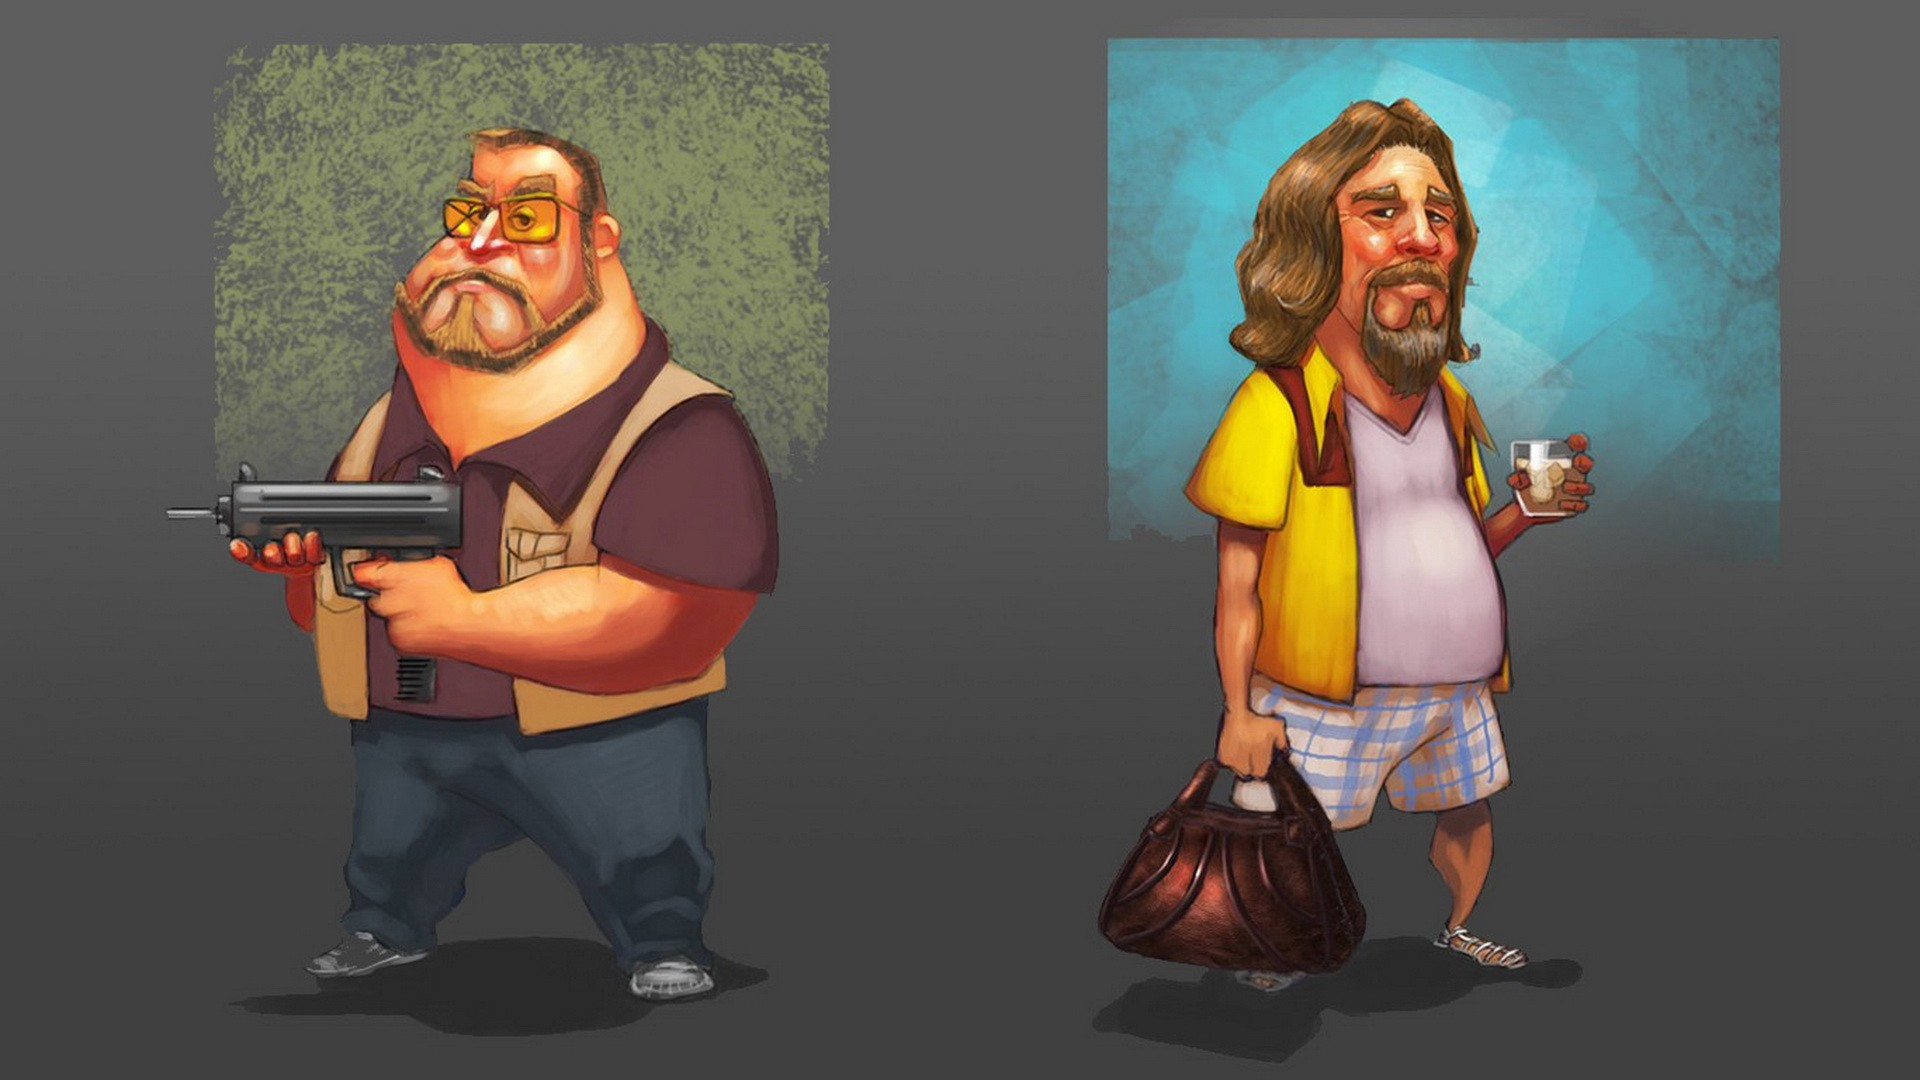 Wallpapers movies The Dude The Big Lebowski Walter Sobchak 1920x1080